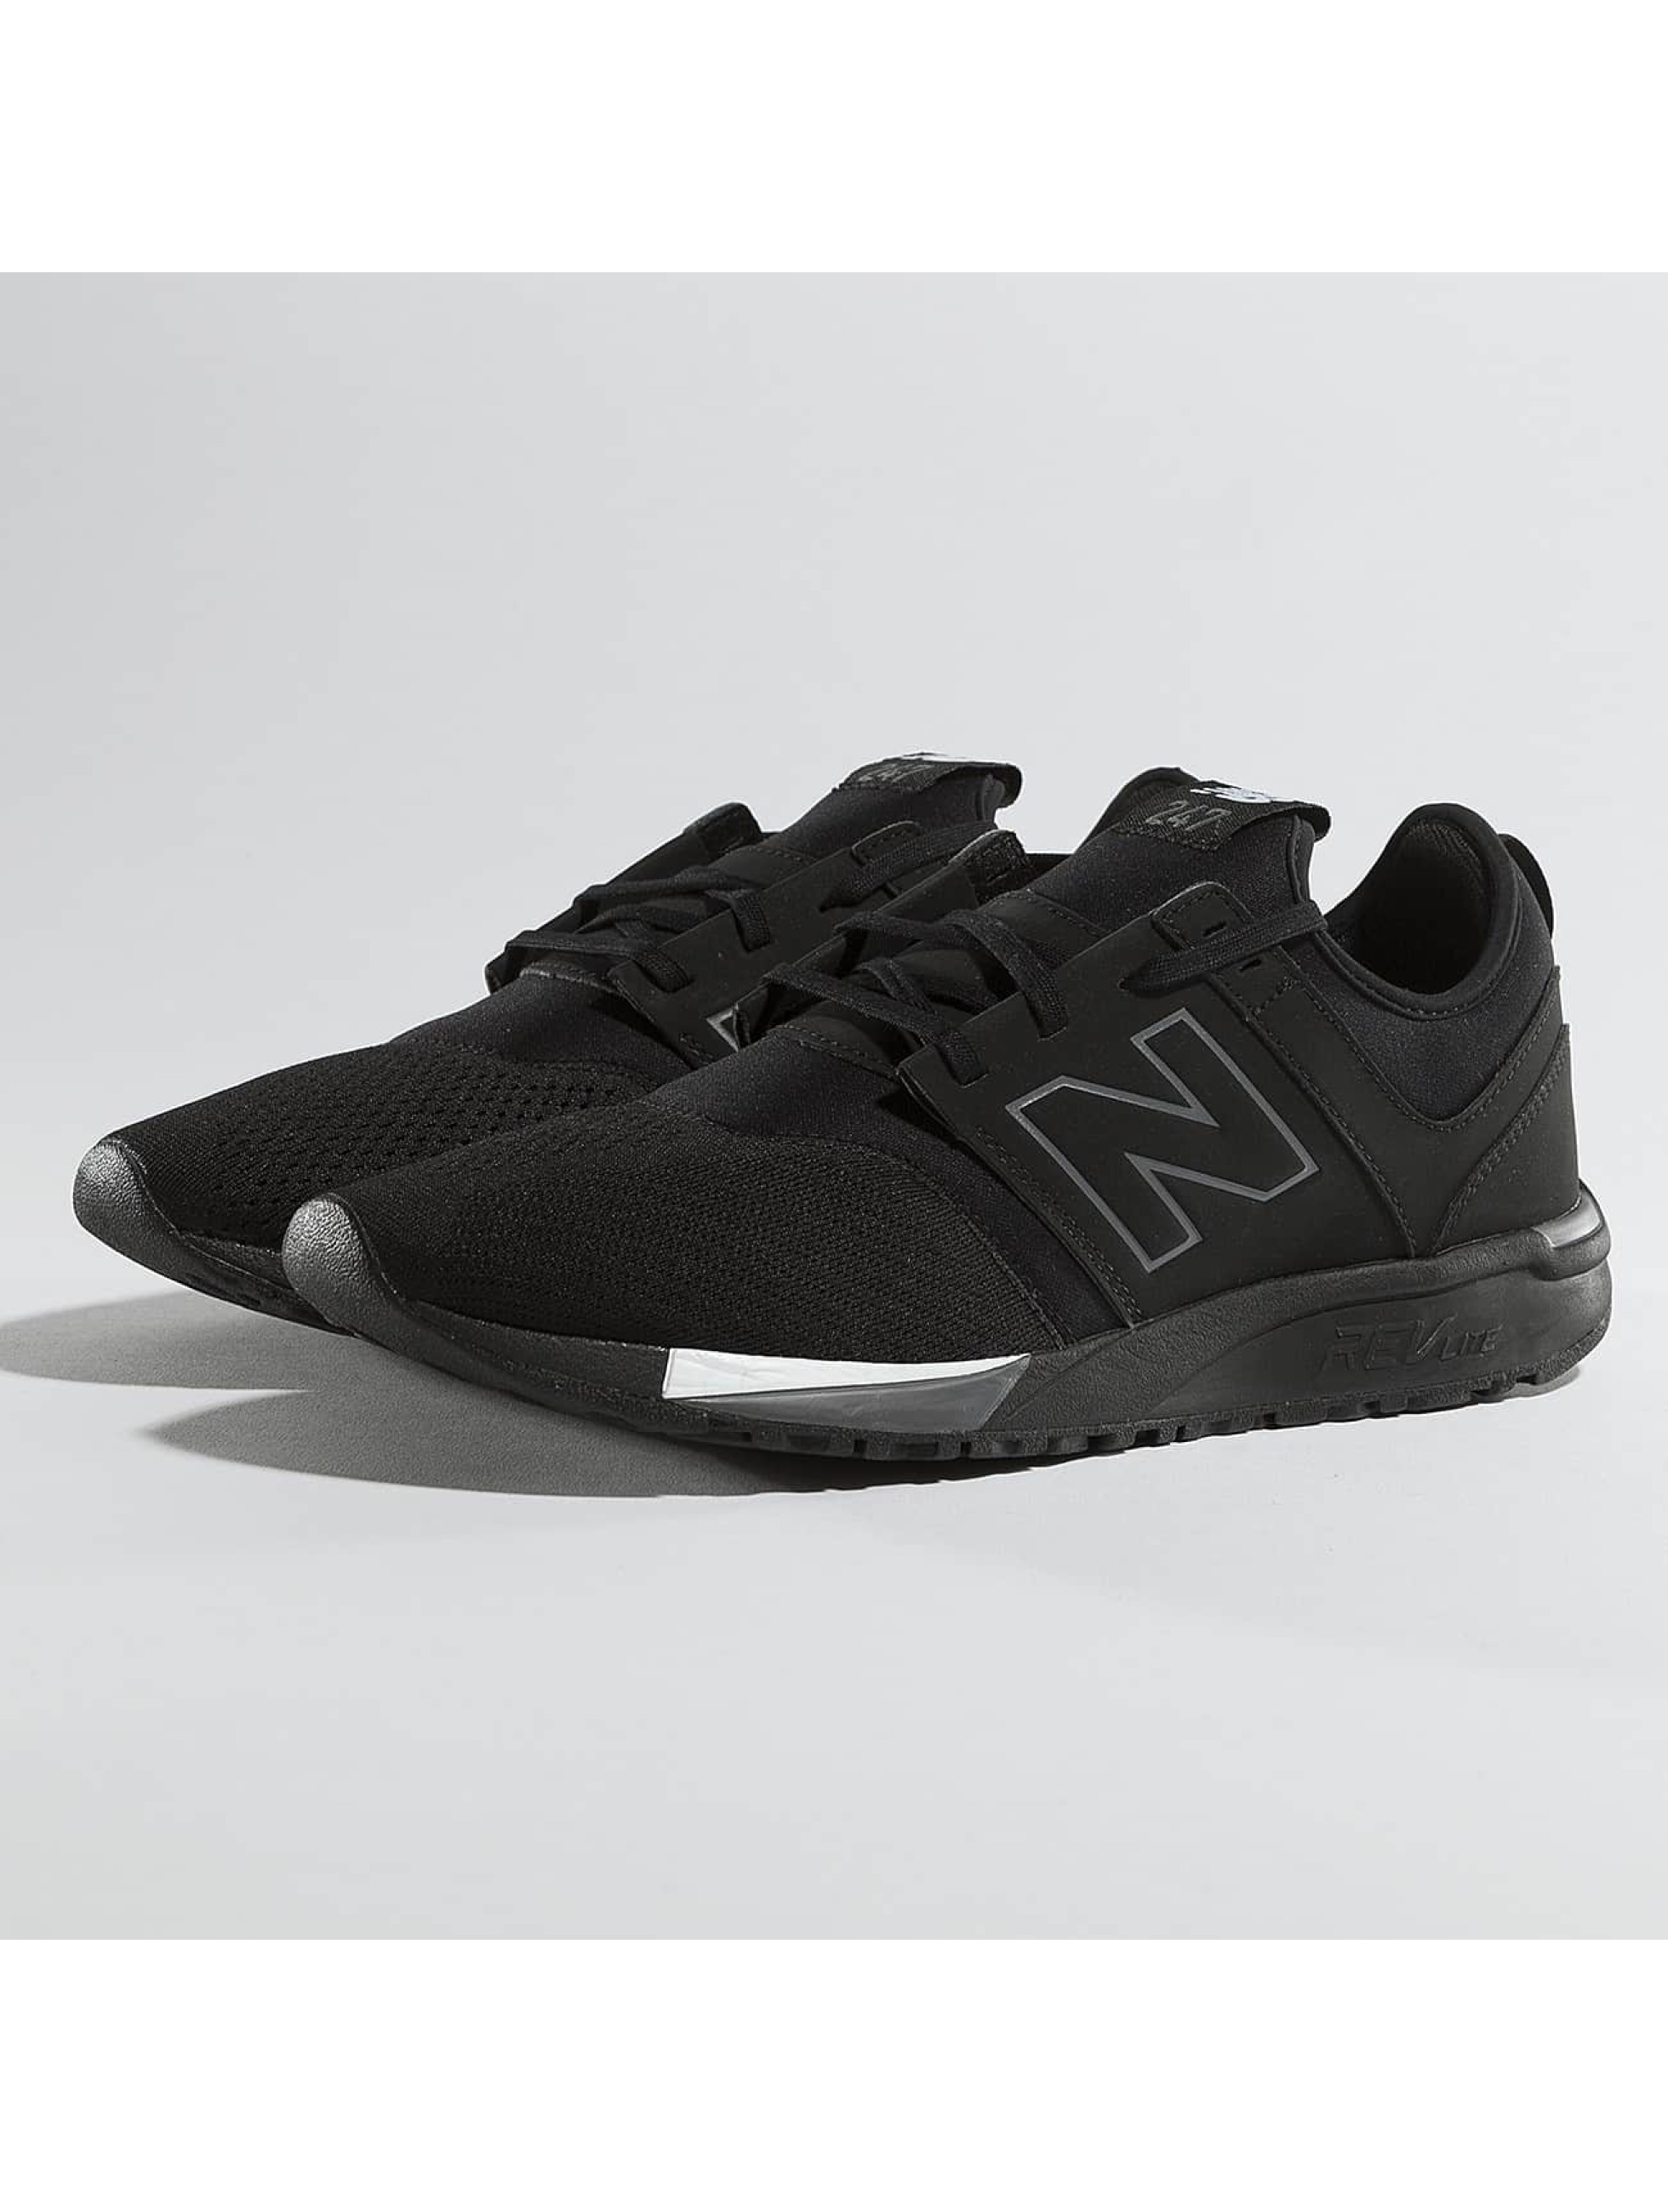 new balance 247 classic noir homme baskets new balance acheter pas cher chaussures 349666. Black Bedroom Furniture Sets. Home Design Ideas